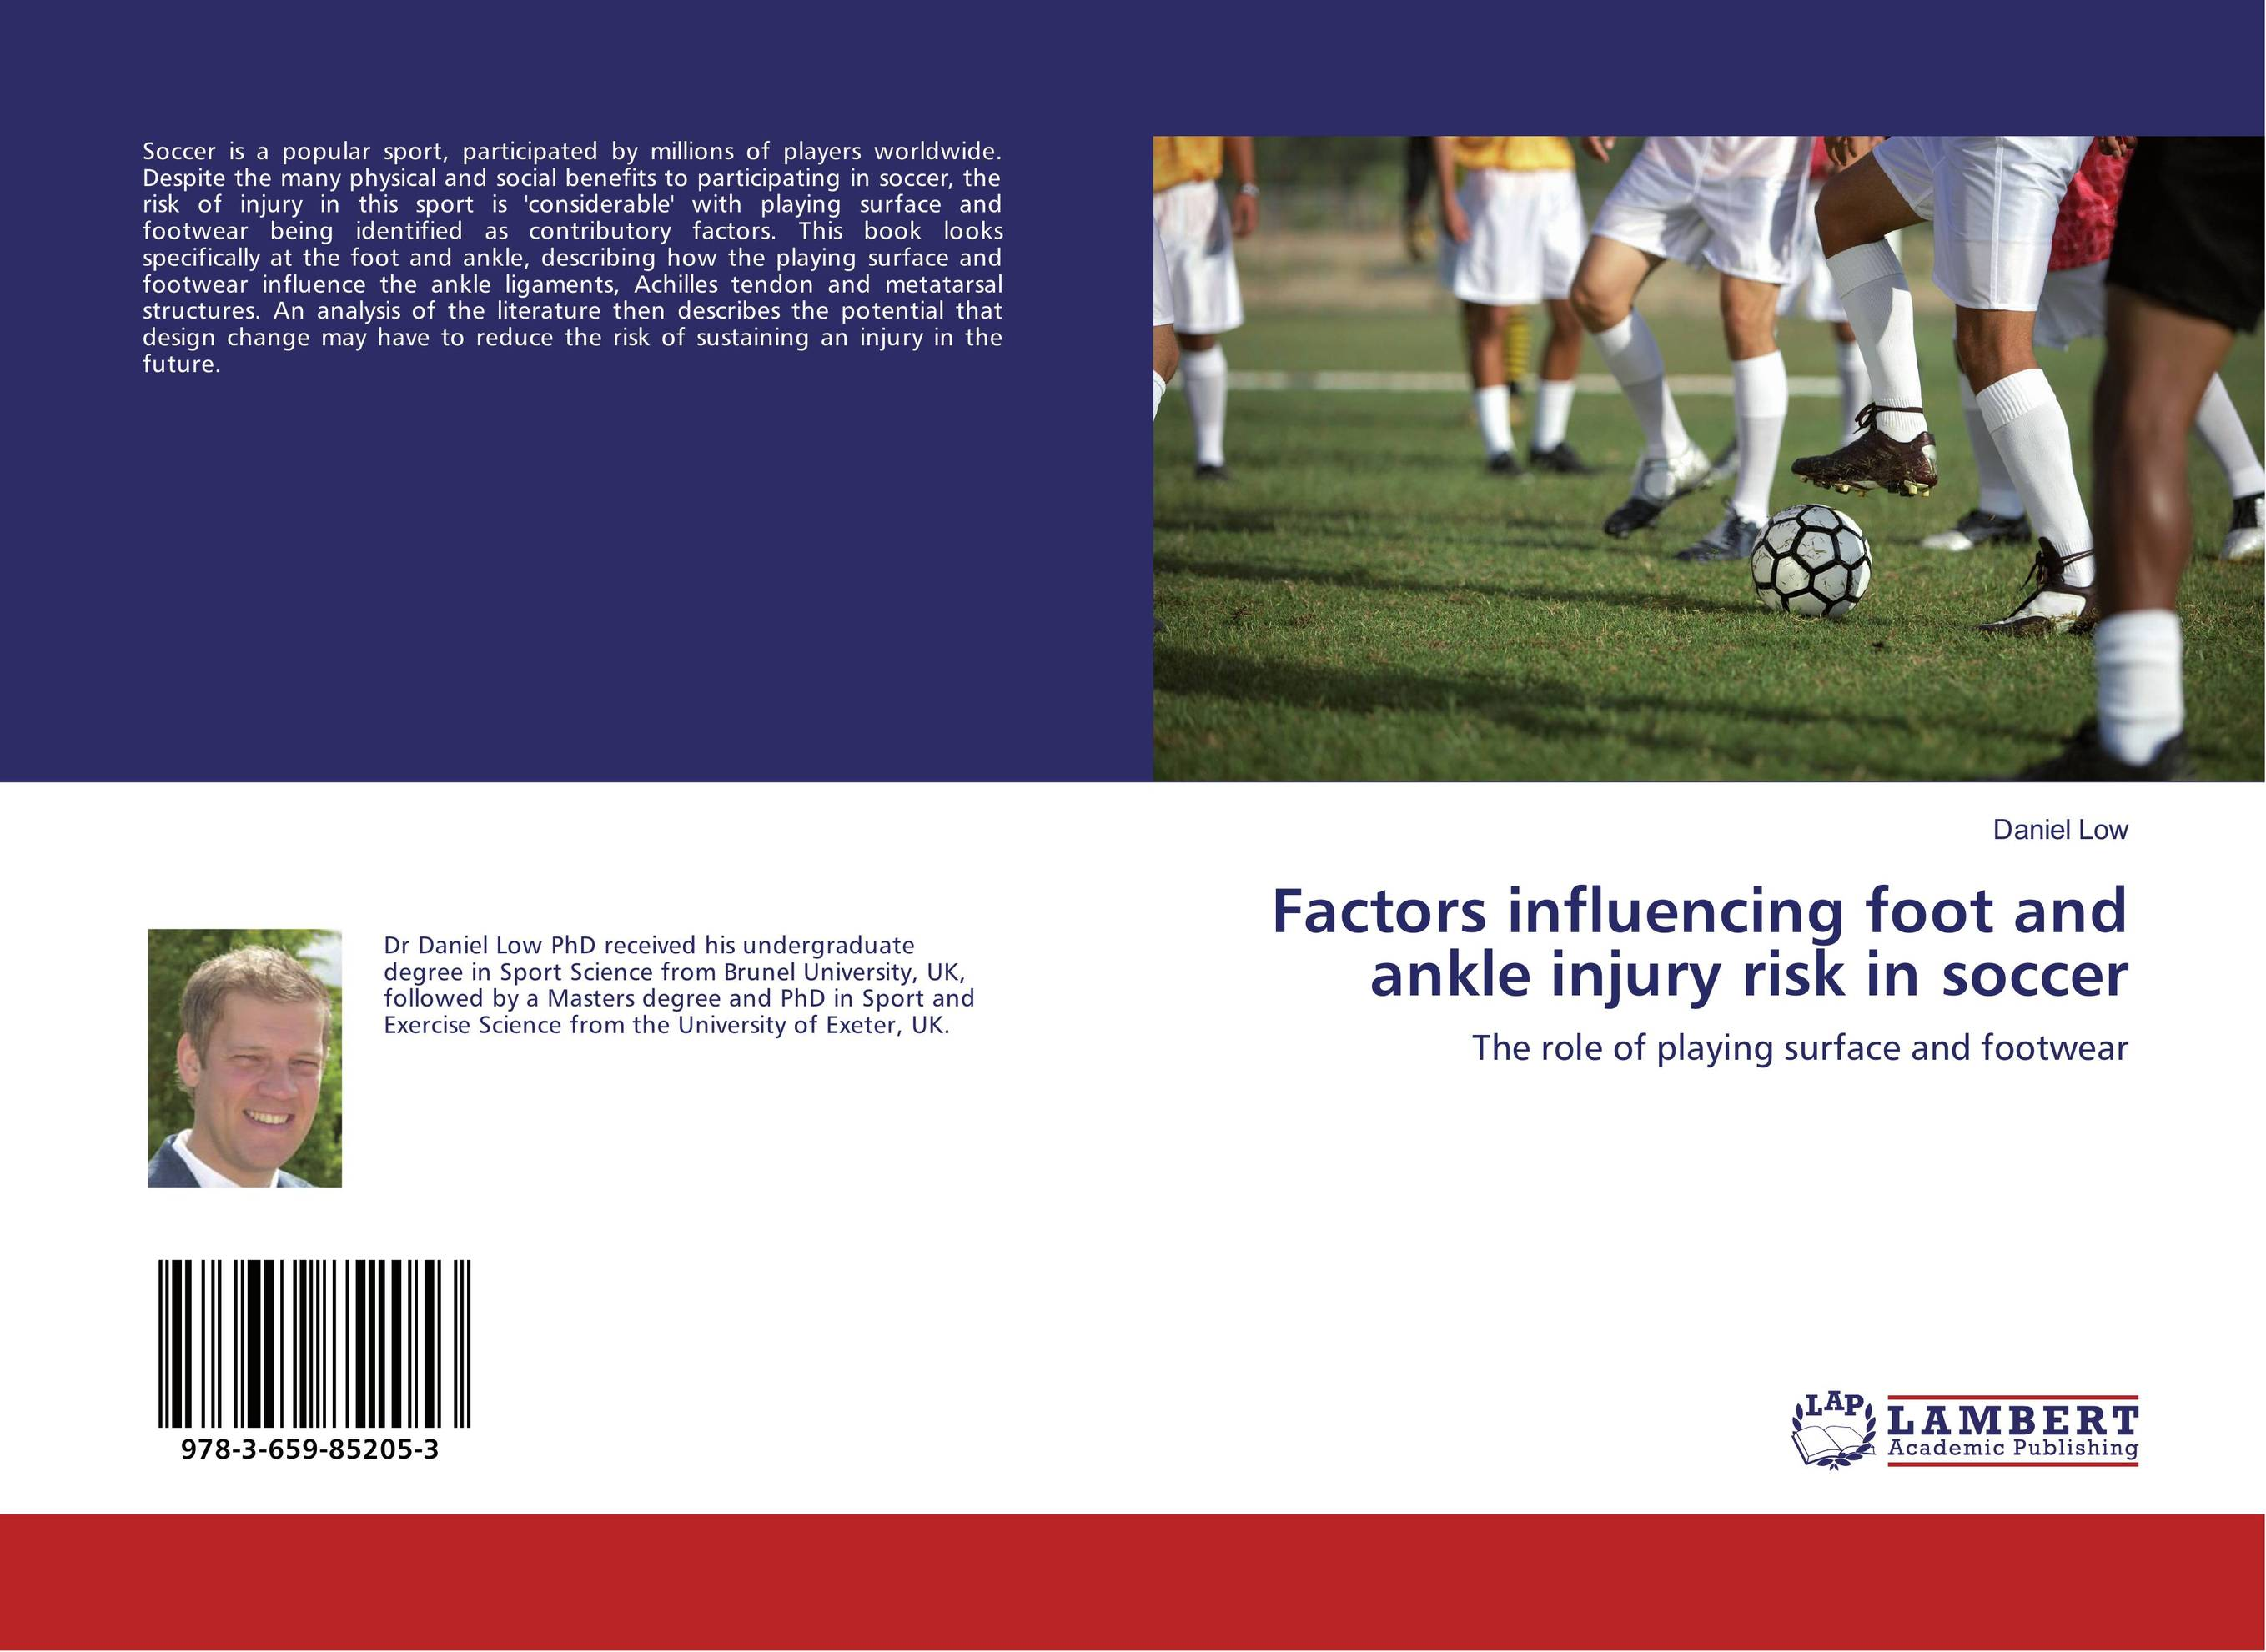 Factors influencing foot and ankle injury risk in soccer factors influencing the growth of informal rental housing in swaziland